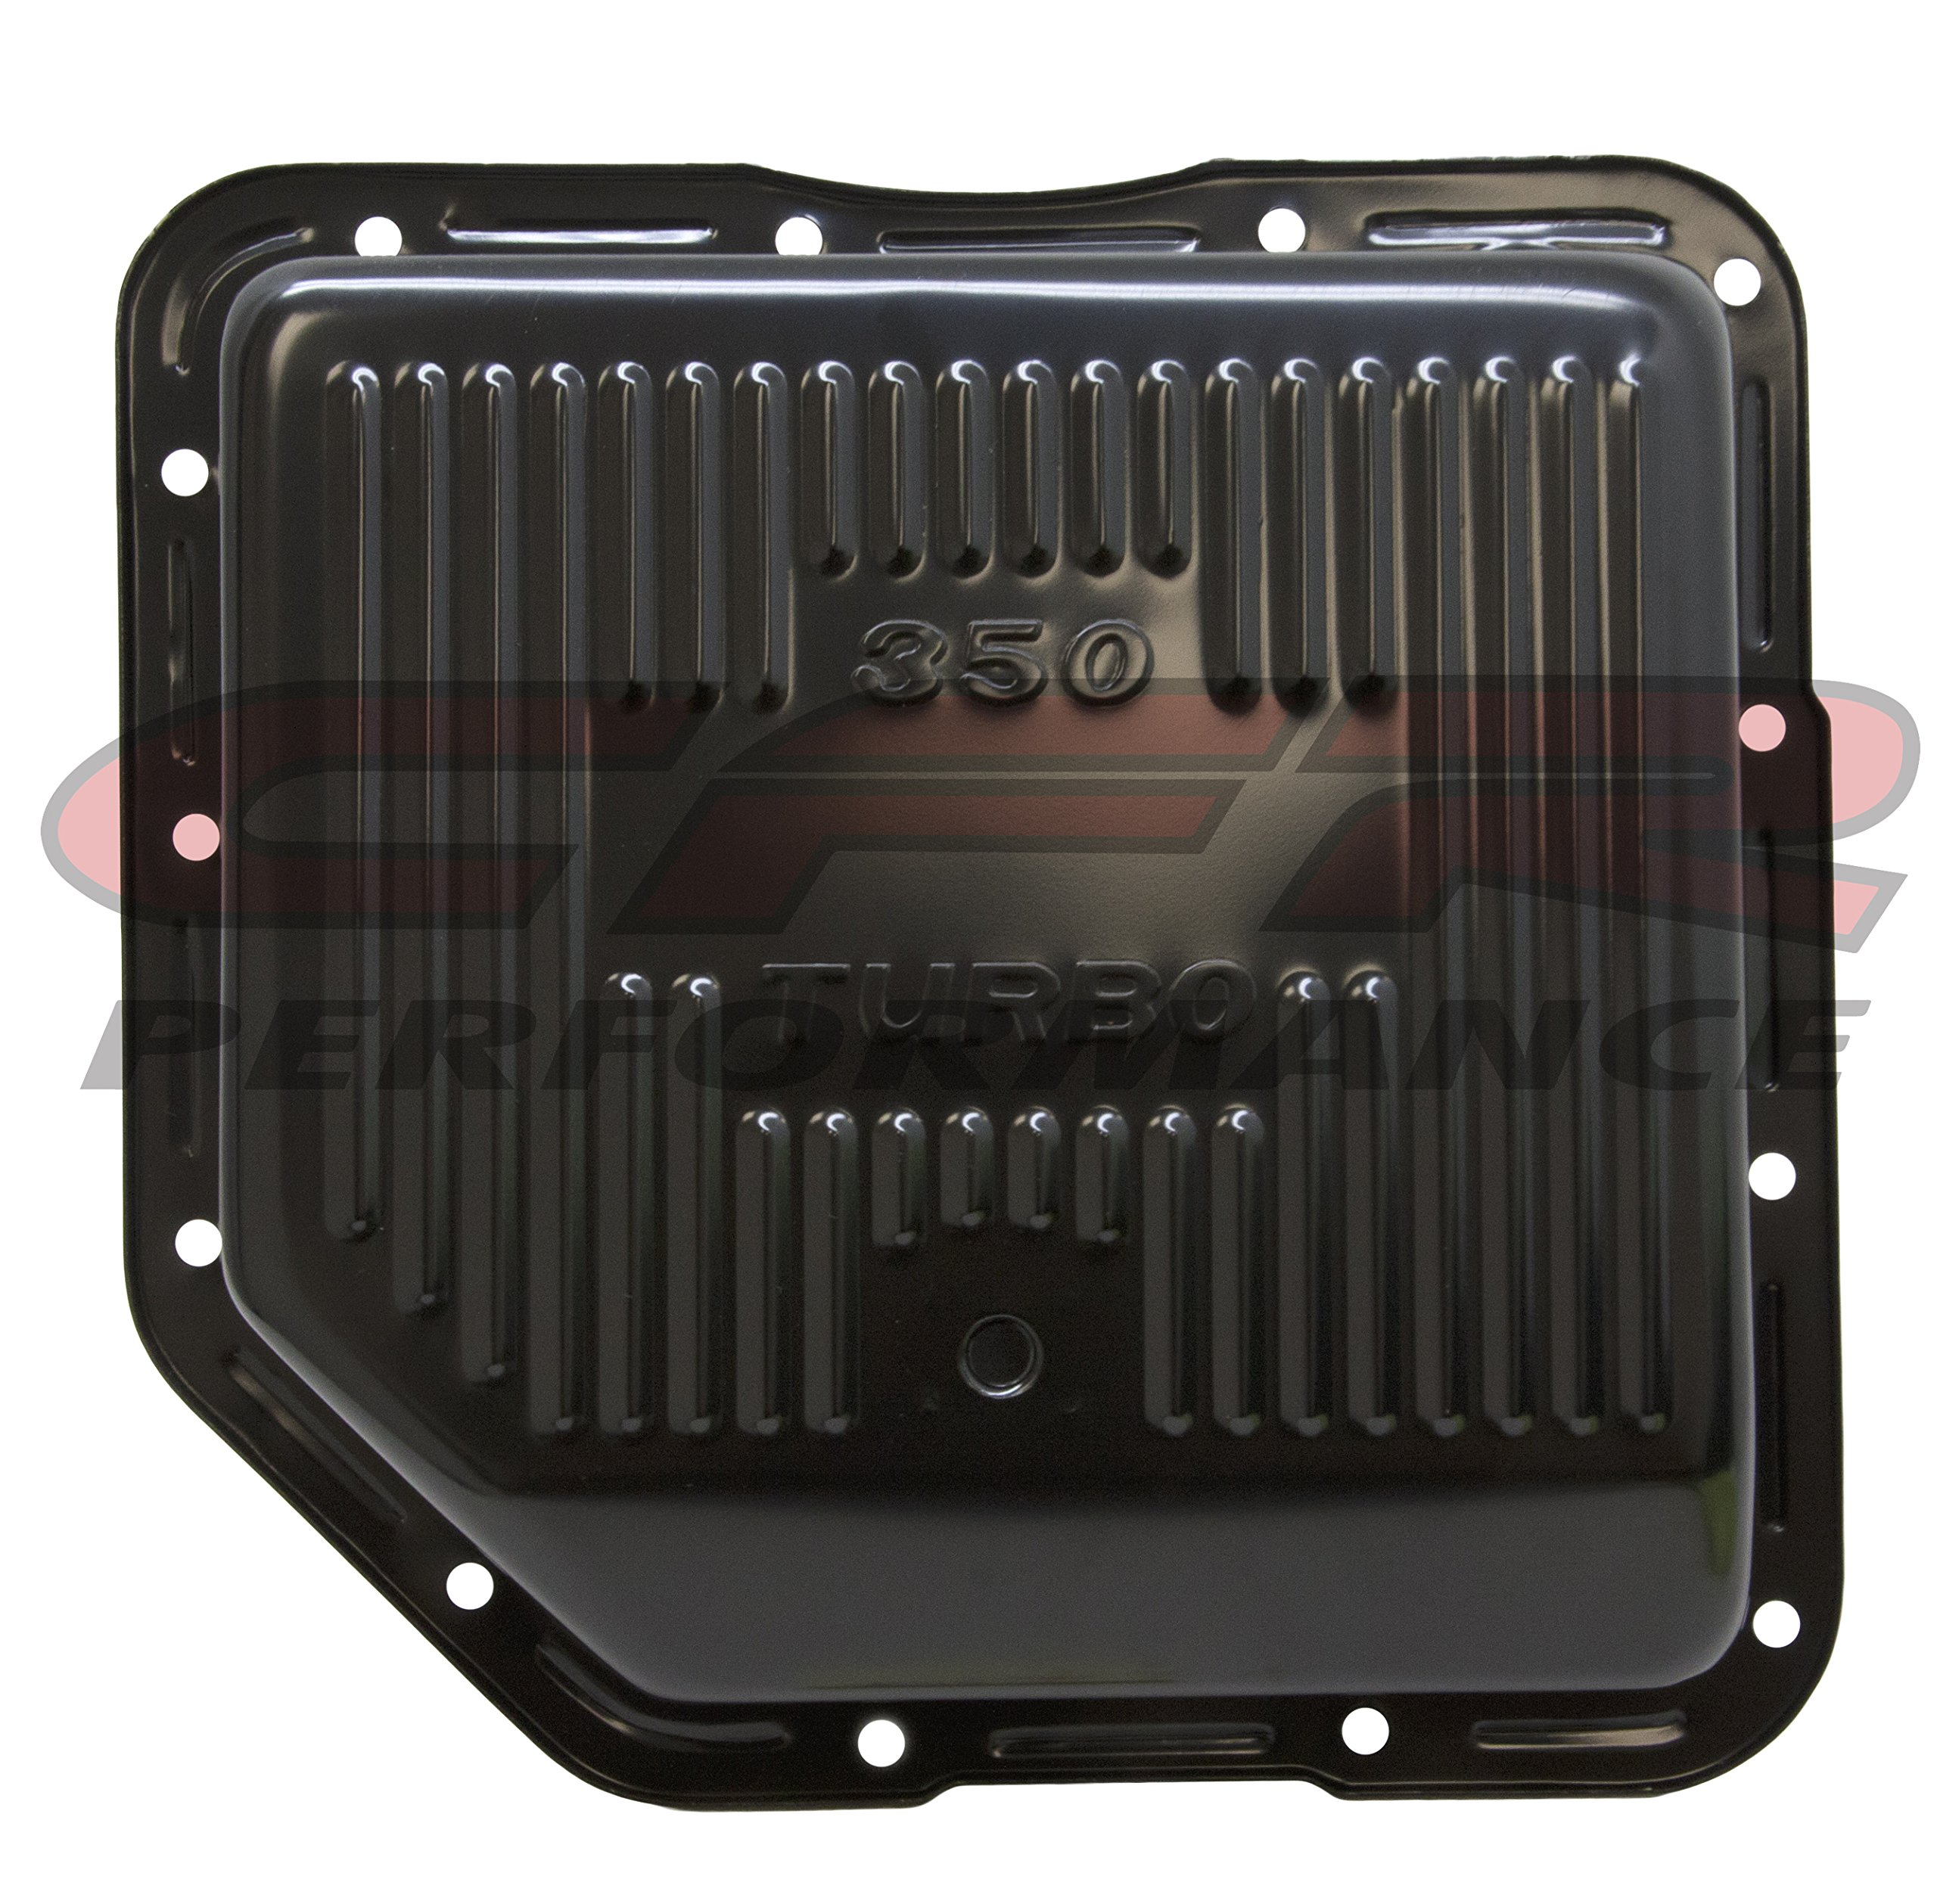 Compatible/Replacement for CHEVY/GM TURBO TH-350 STEEL TRANSMISSION PAN - BLACK